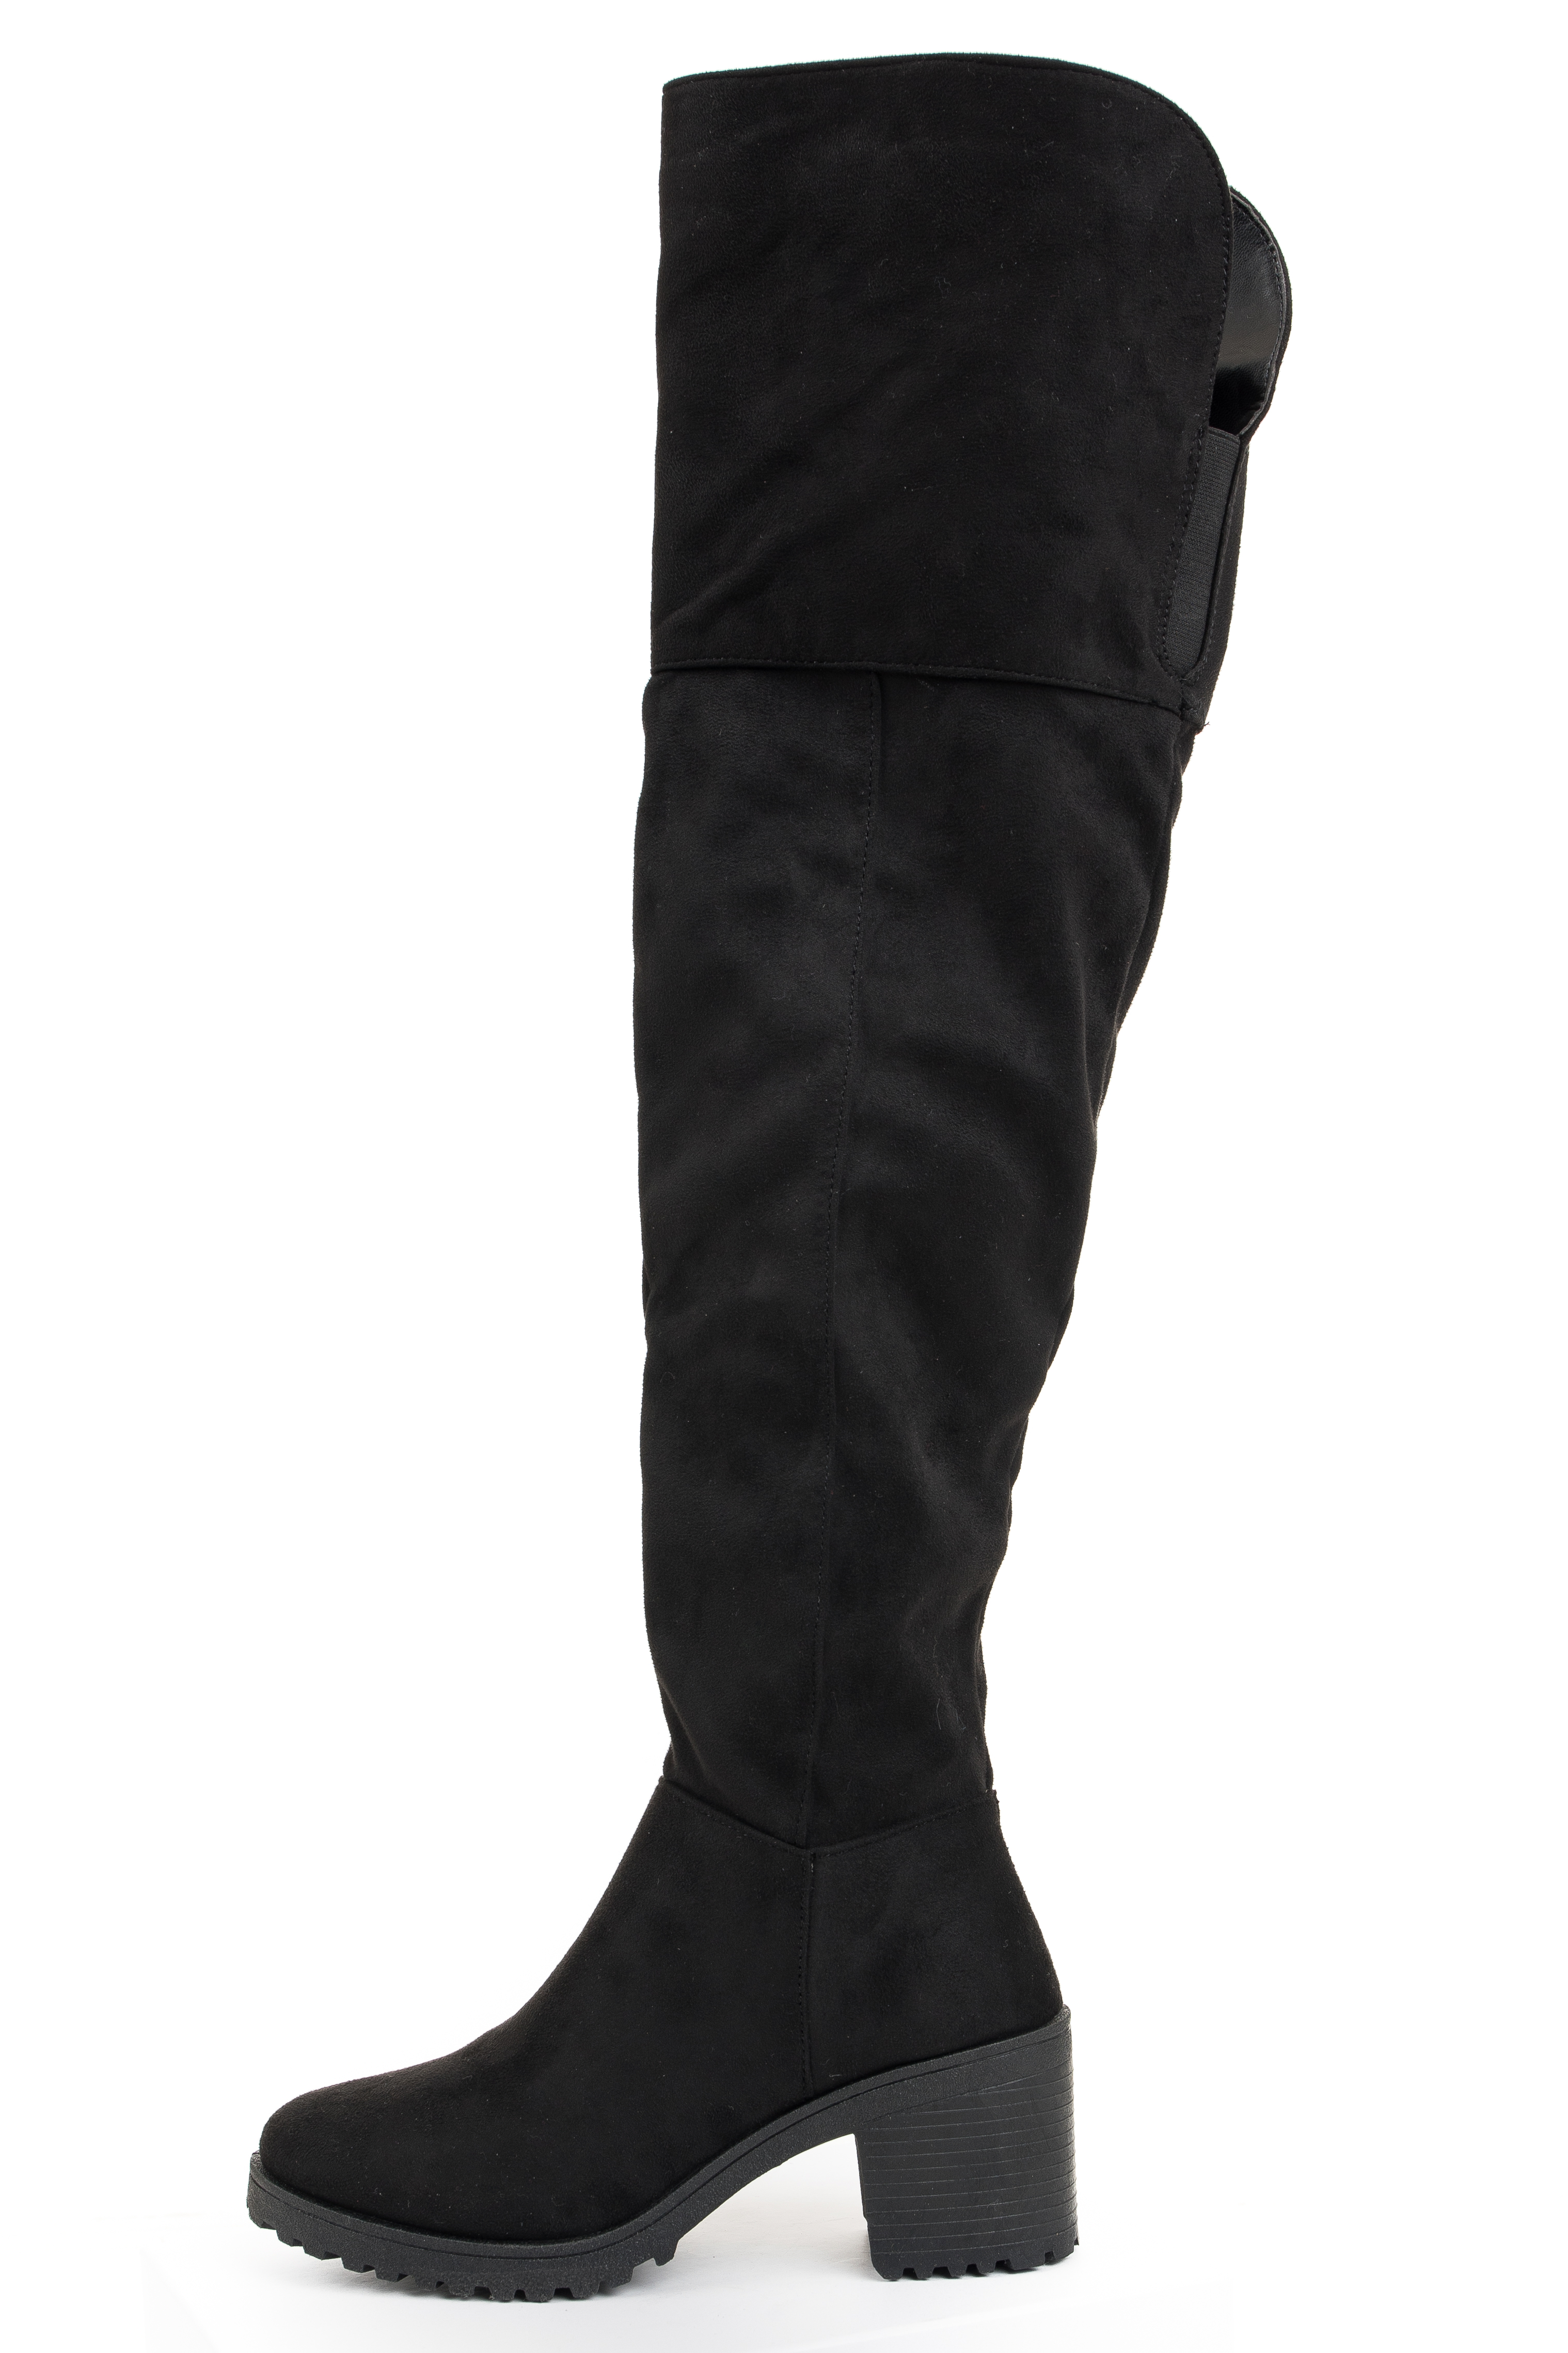 Black Faux Suede Knee High Chunky Heeled Boots